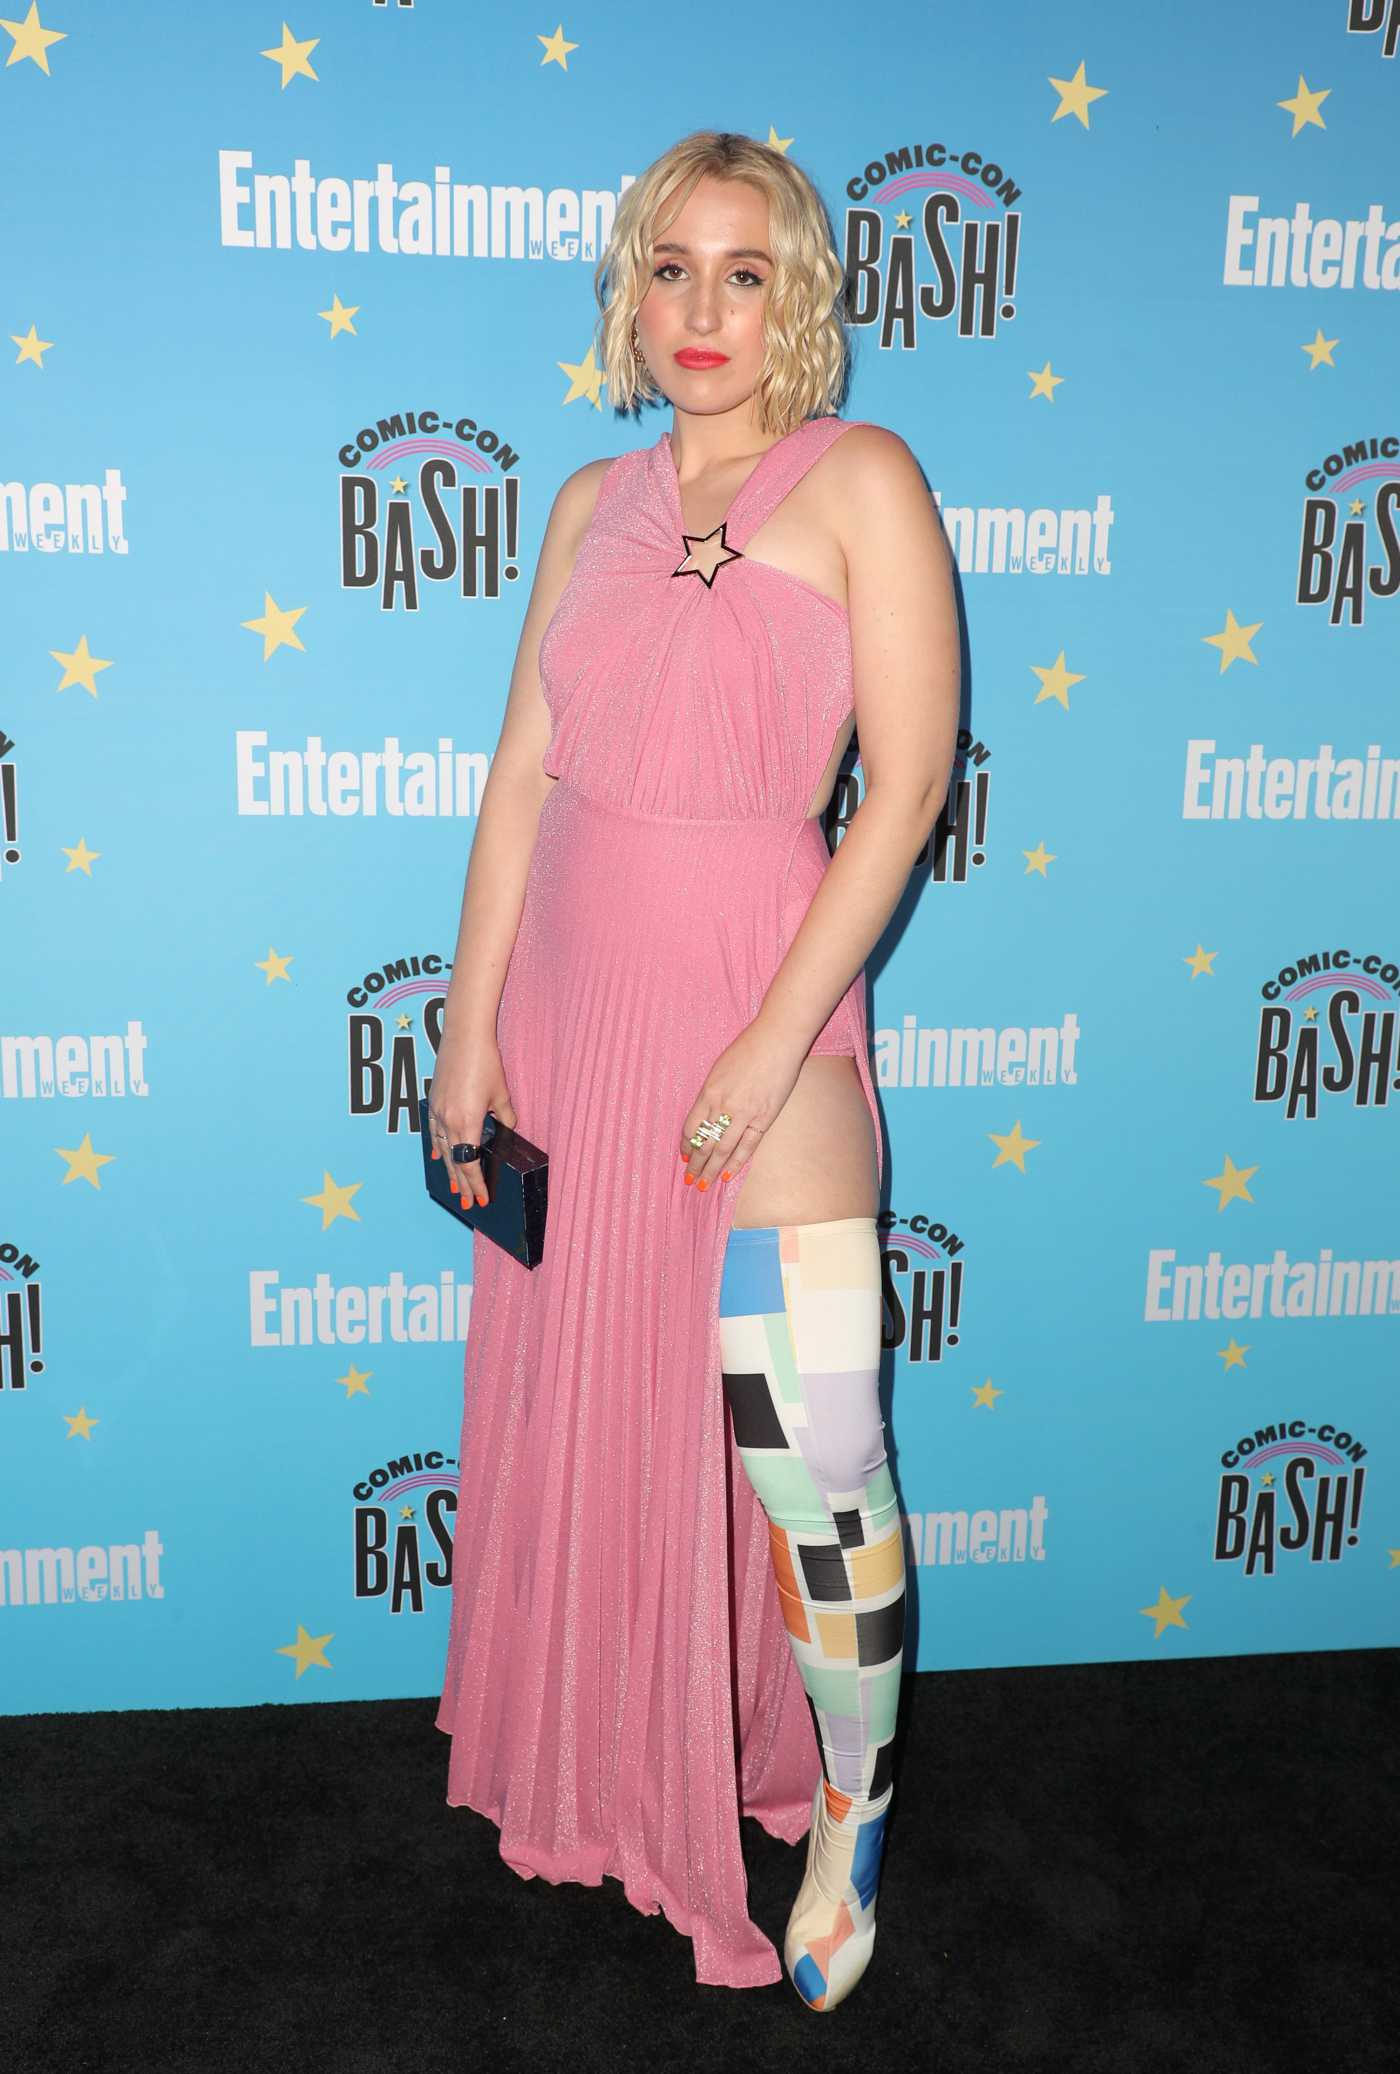 Harley Quinn Smith Attends Entertainment Weekly's Comic-Con Bash in San Diego 07/20/2019